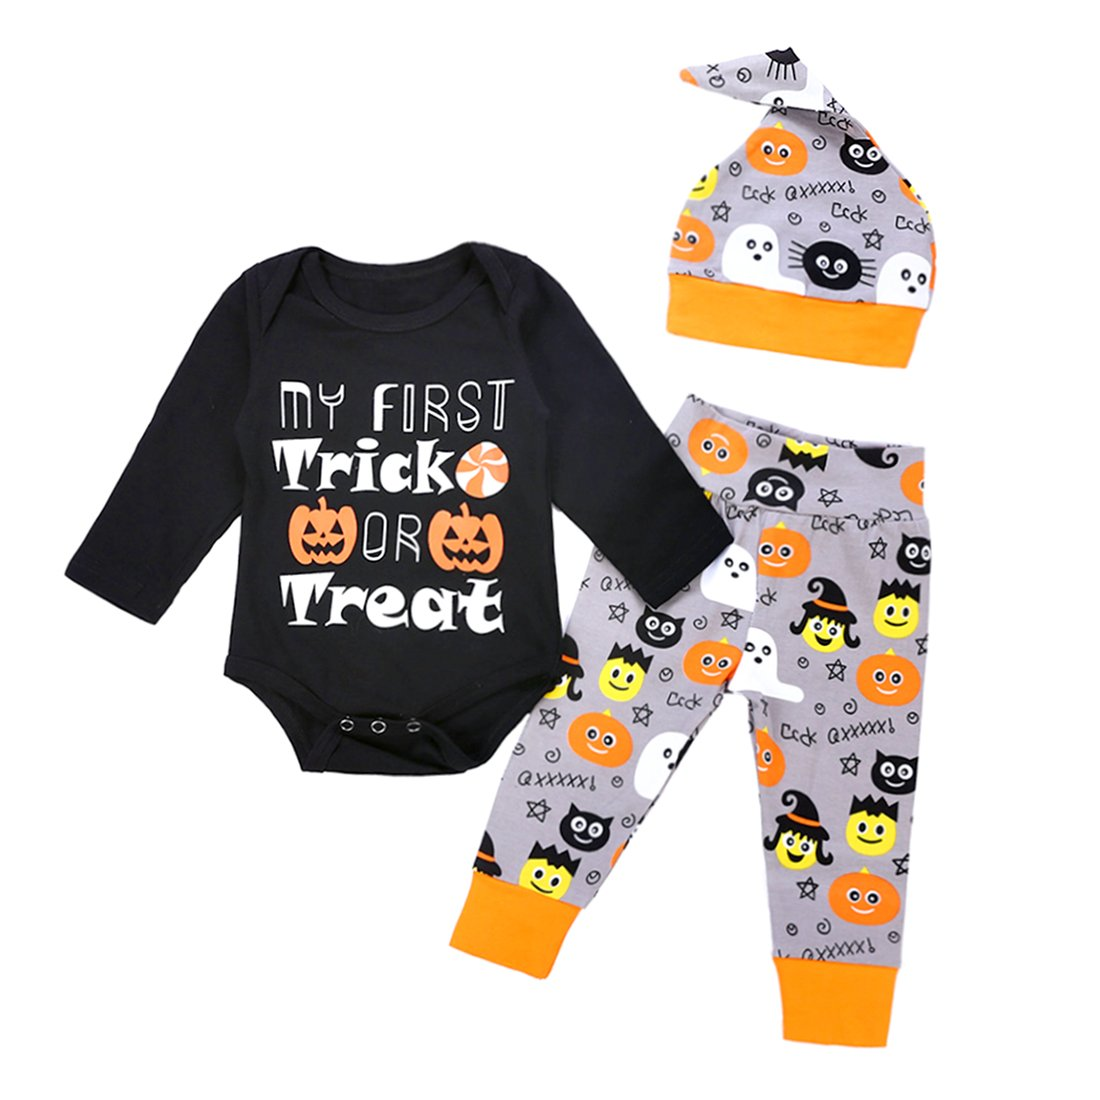 c0f3786a2 My First Trick Or Treat Super cute and funny printed, Best Christmas gift  for unisex baby, newborn set